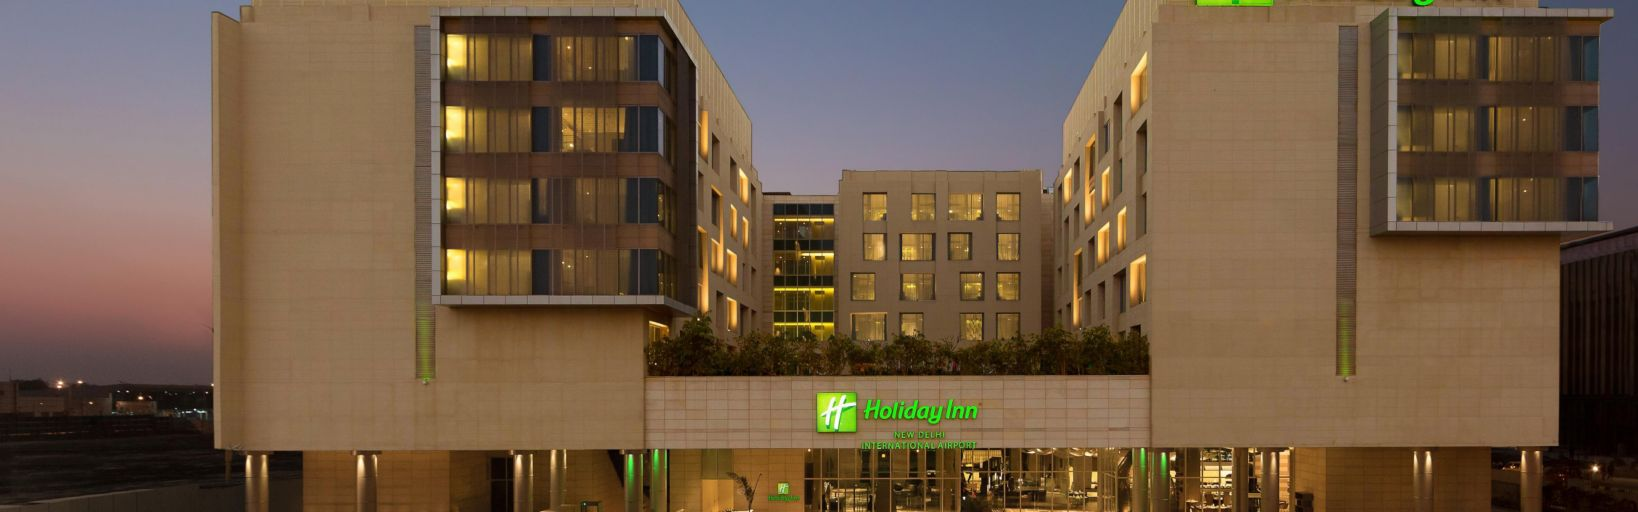 Hotel Delhi Pride Holiday Inn New Delhi International Airport Hotel By Ihg